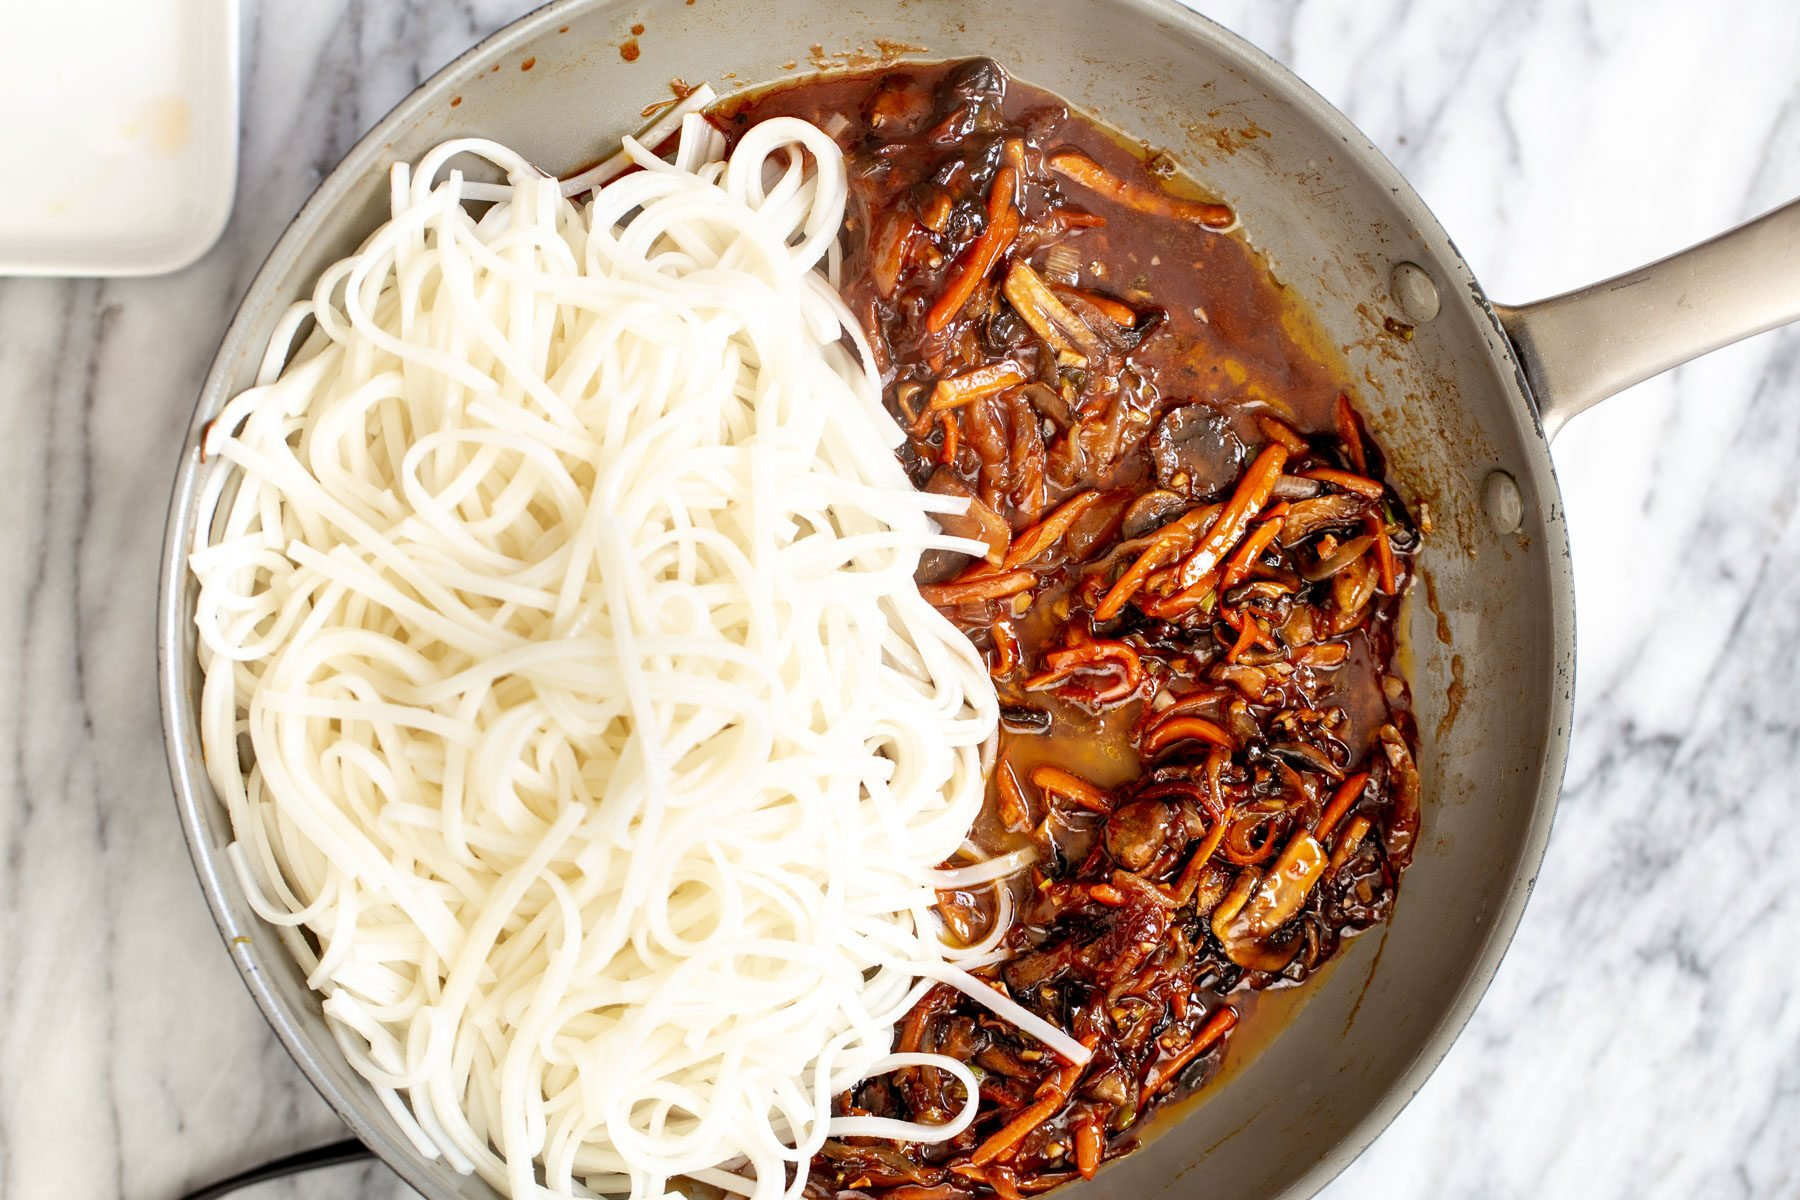 cooked rice noodles and veggies with Korean stir-fry sauce in a saucepan